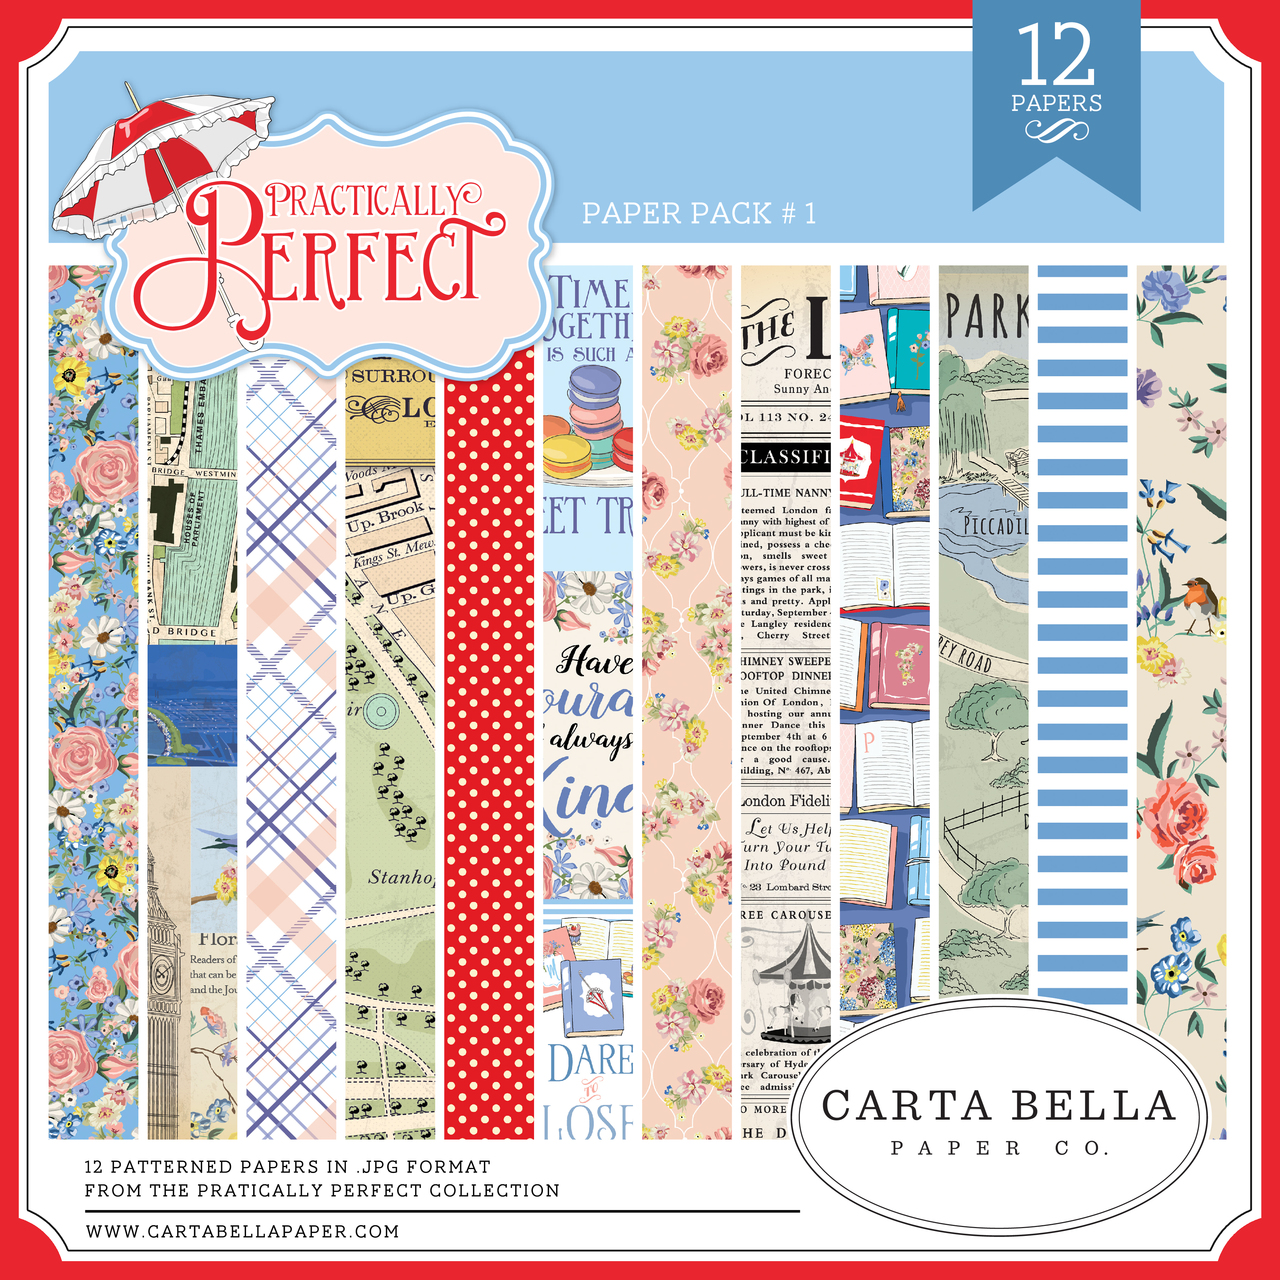 Practically Perfect Paper Pack #1